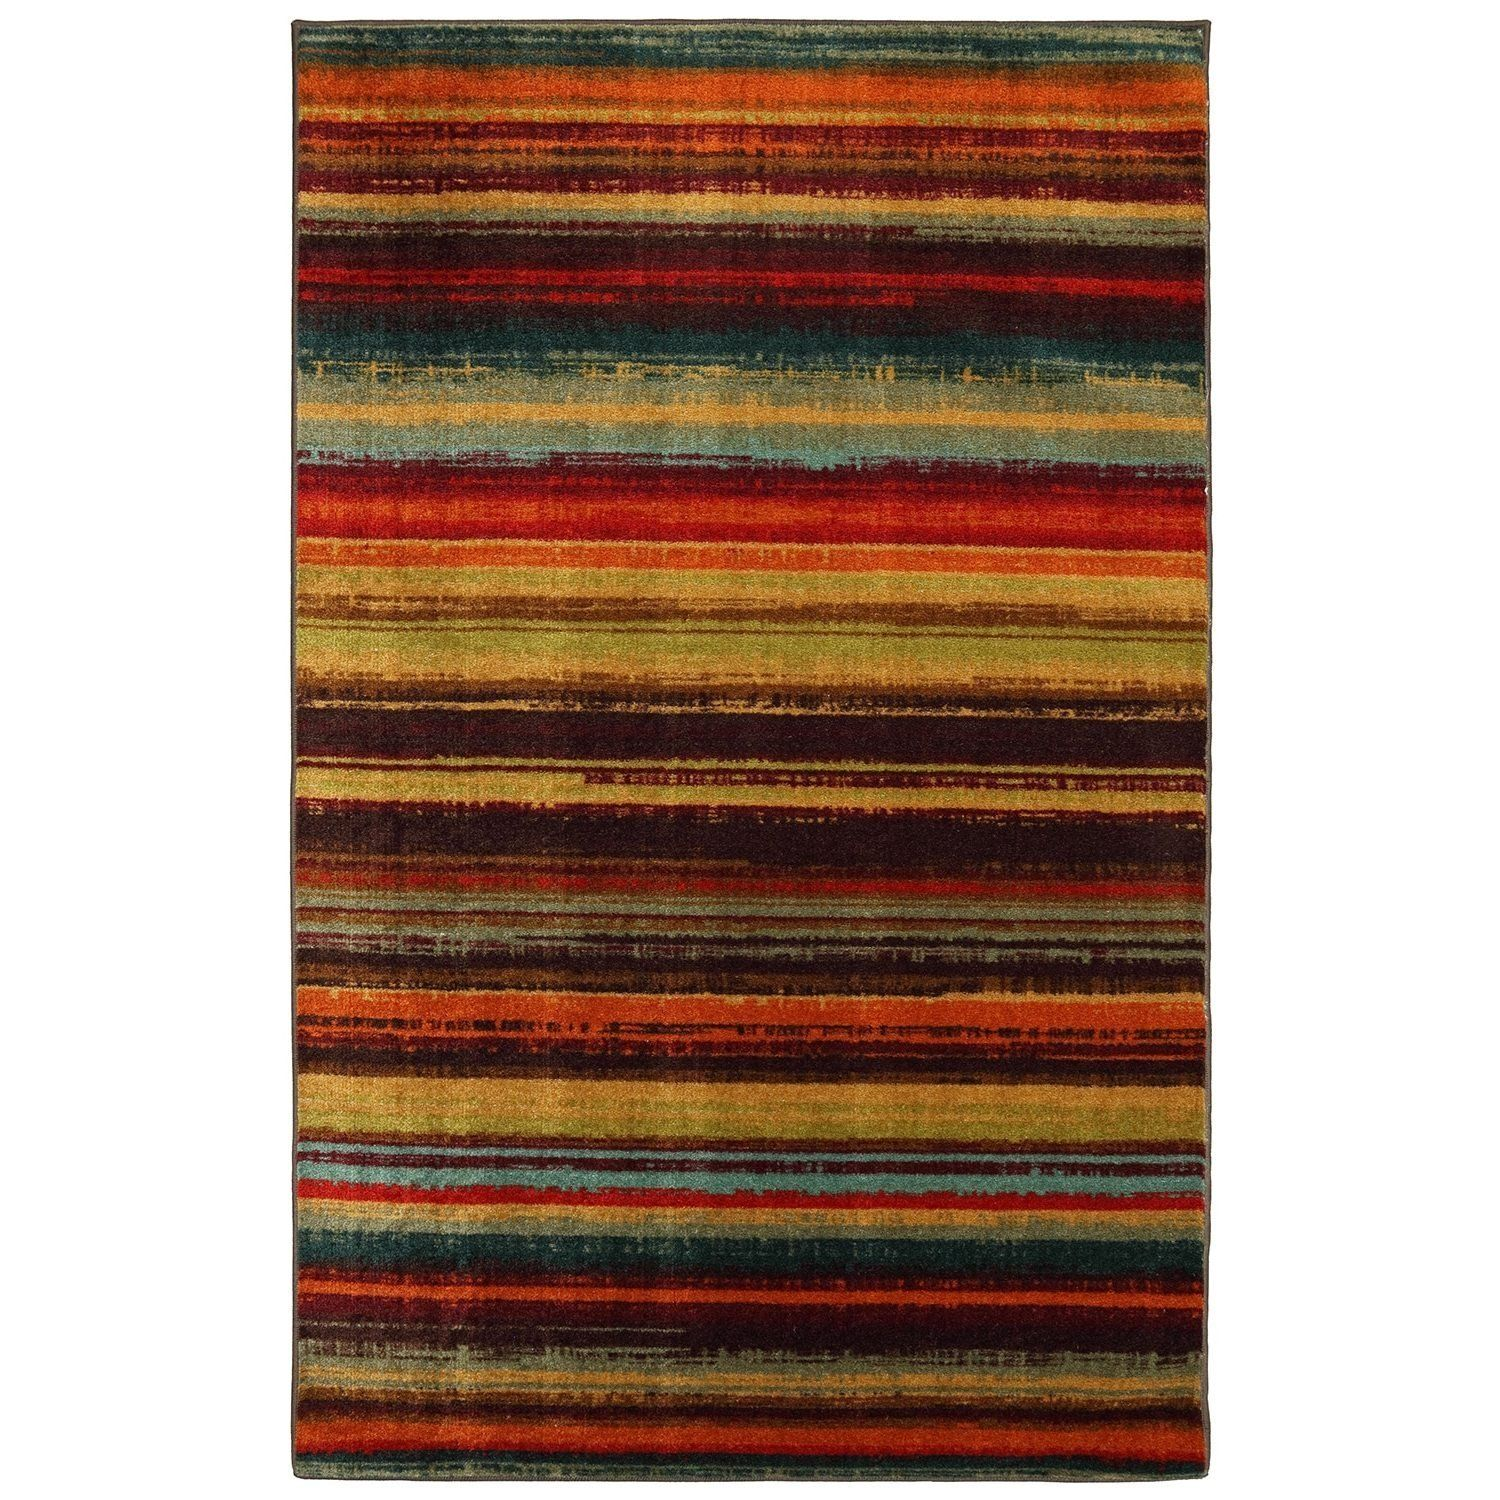 2 6 X 3 10 Color Striped Area Rug Blue Red Green Gold Contemporary